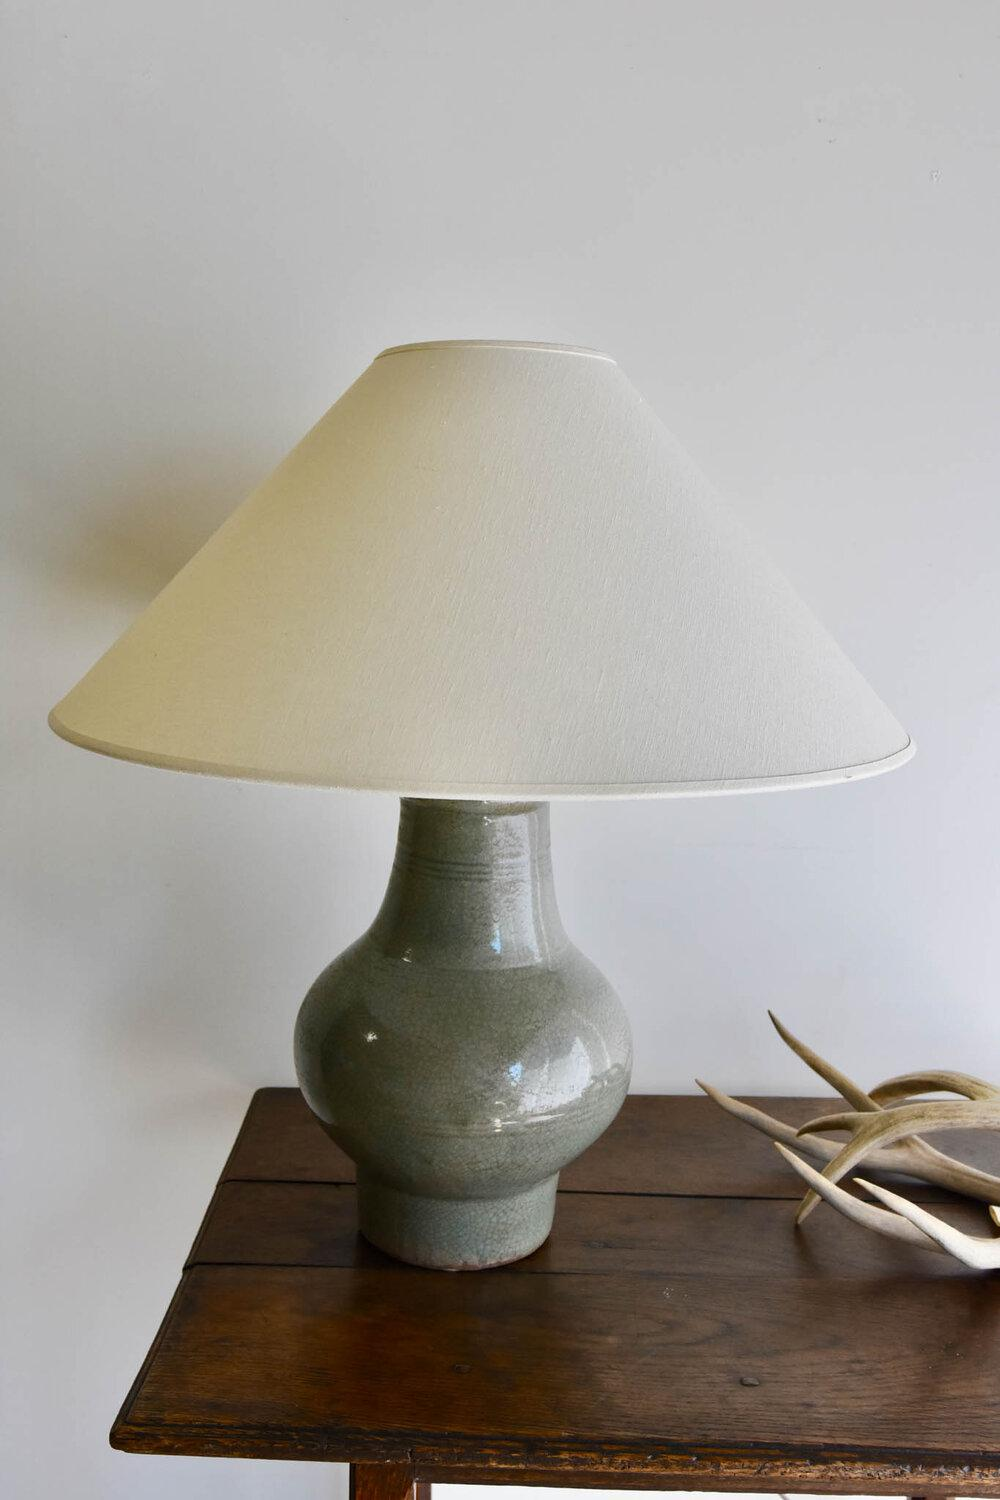 Ceramic Table Lamp in Crackle Lacquer Finish